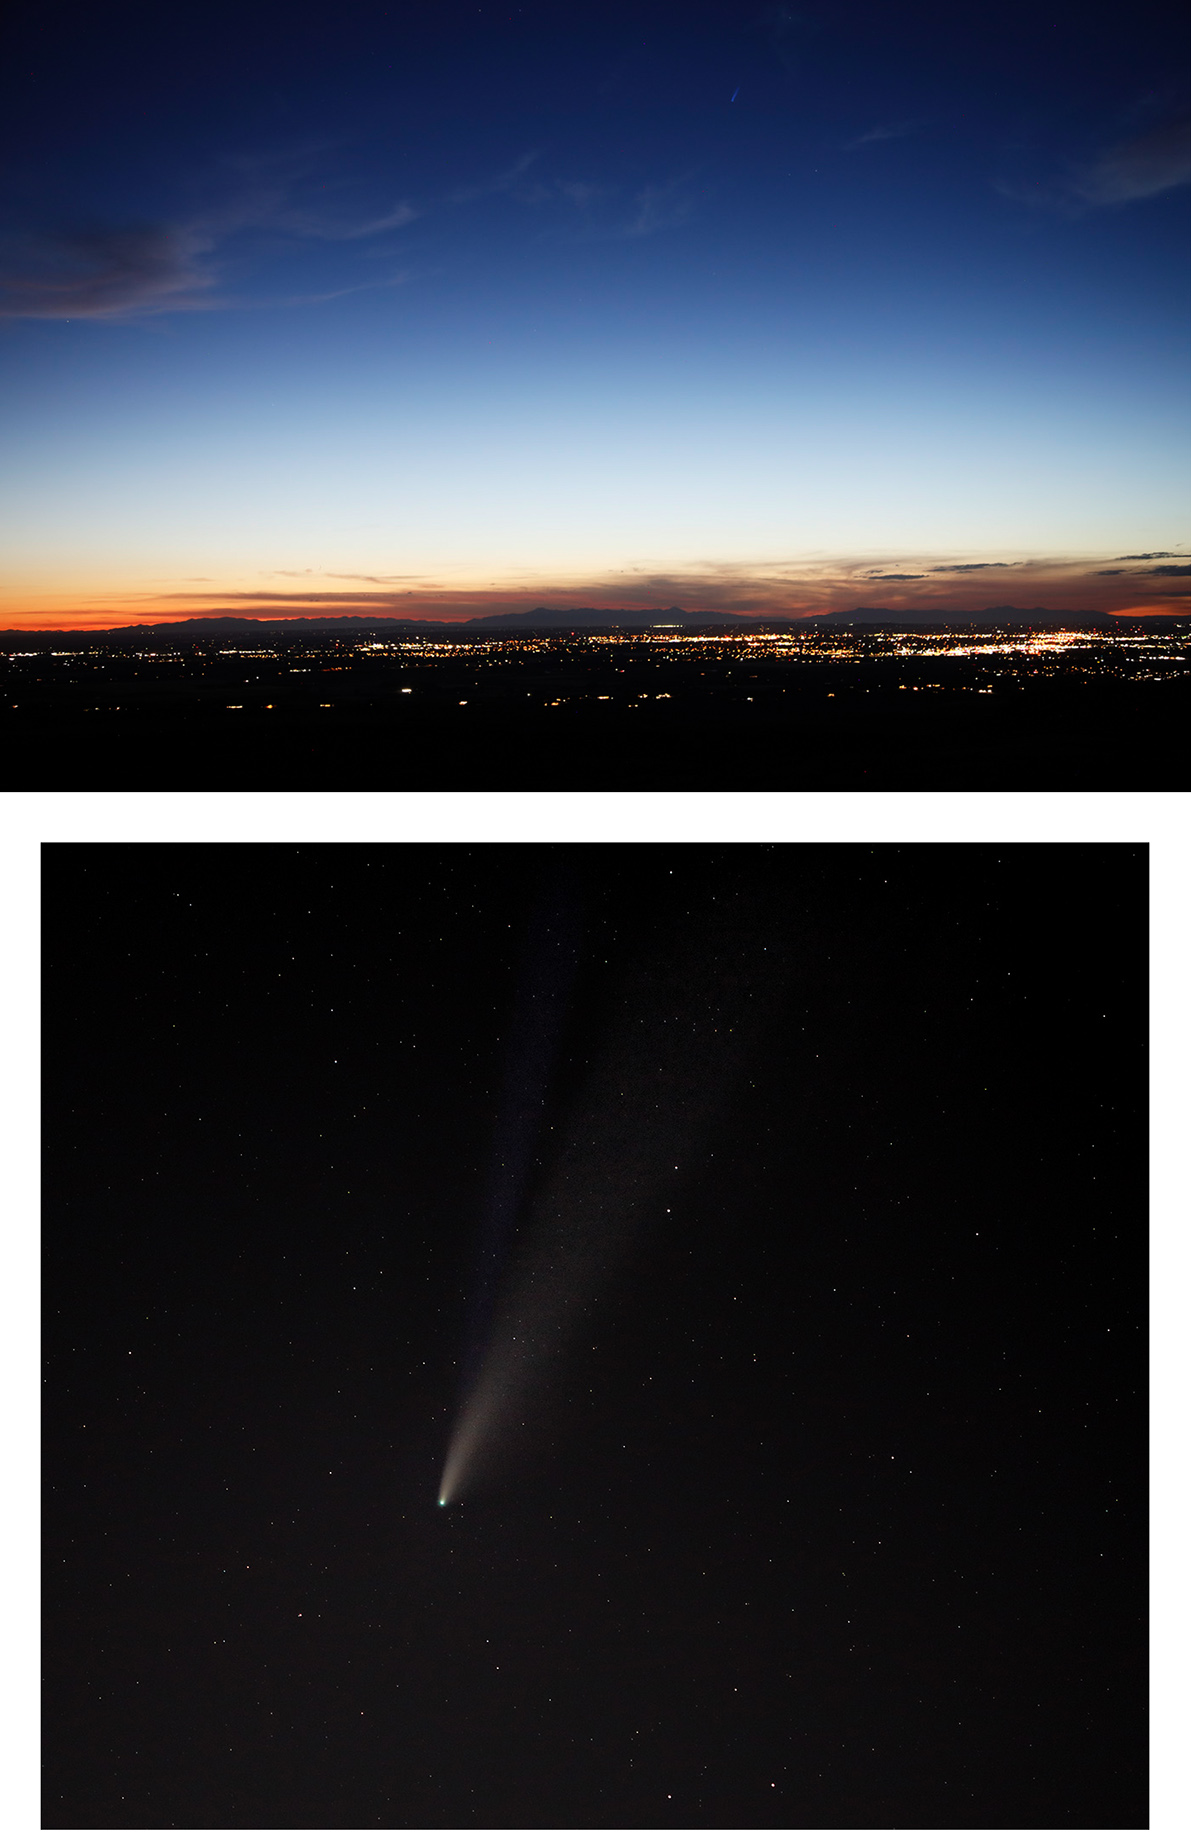 comet neowise IF two views.jpg